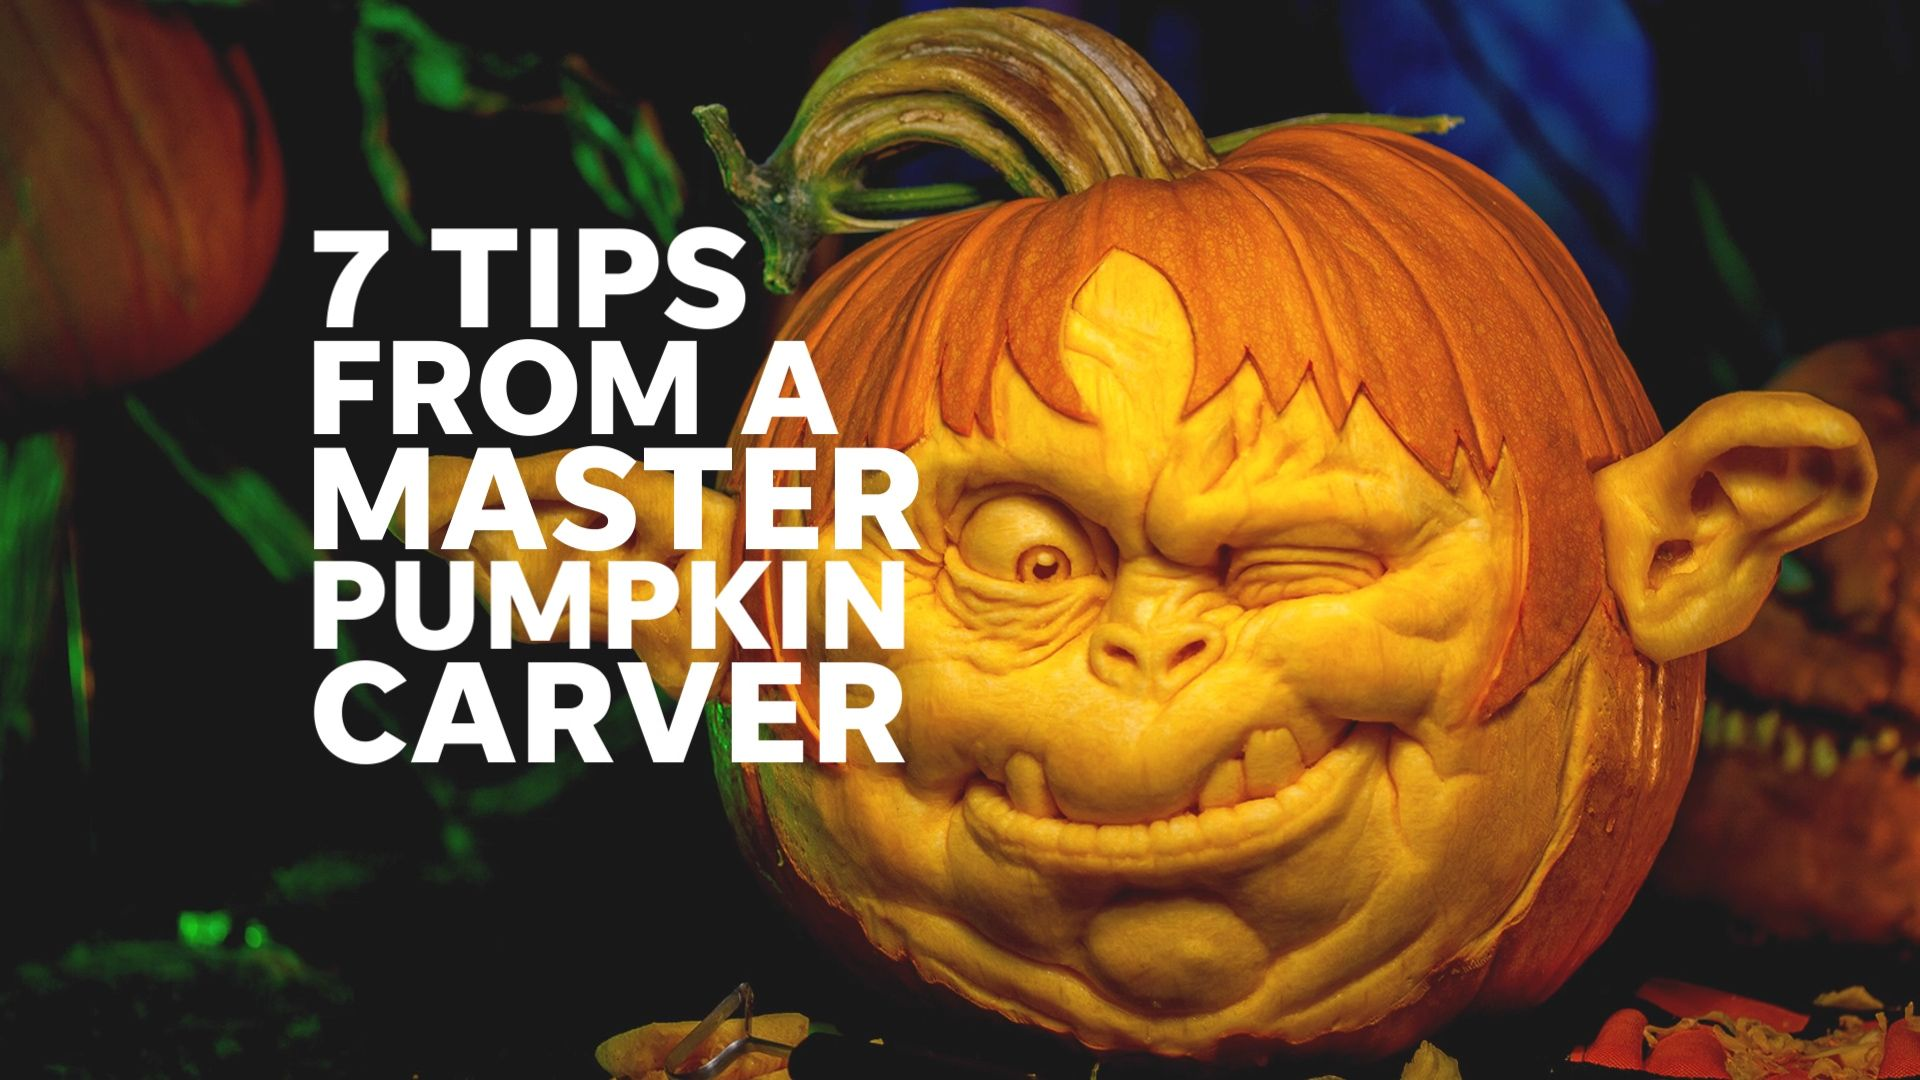 Pumpkin carving master Ray Villafane turns pumpkins into works of art -   15 pumkin carving creative and easy ideas